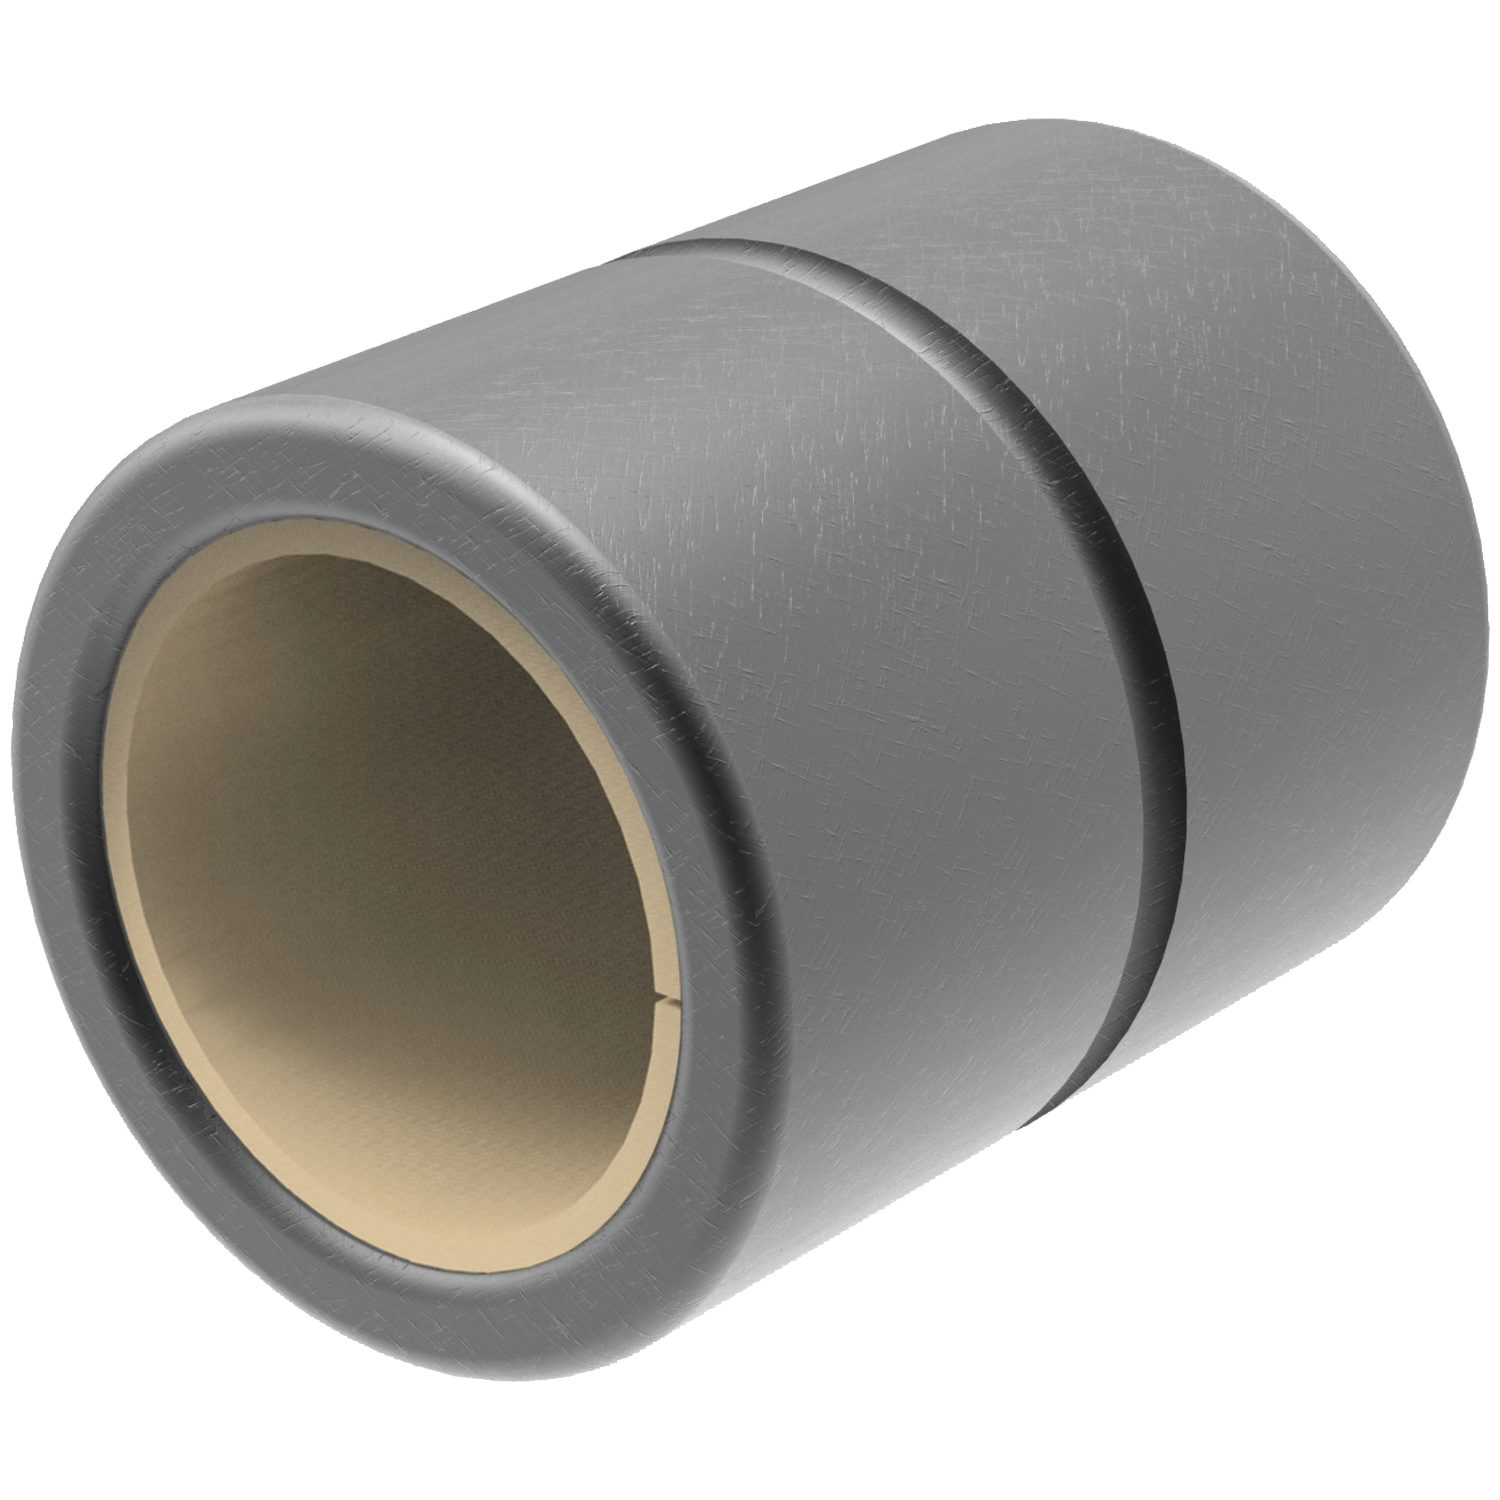 L1769 - Thin Wall Ceramic Linear Bearings